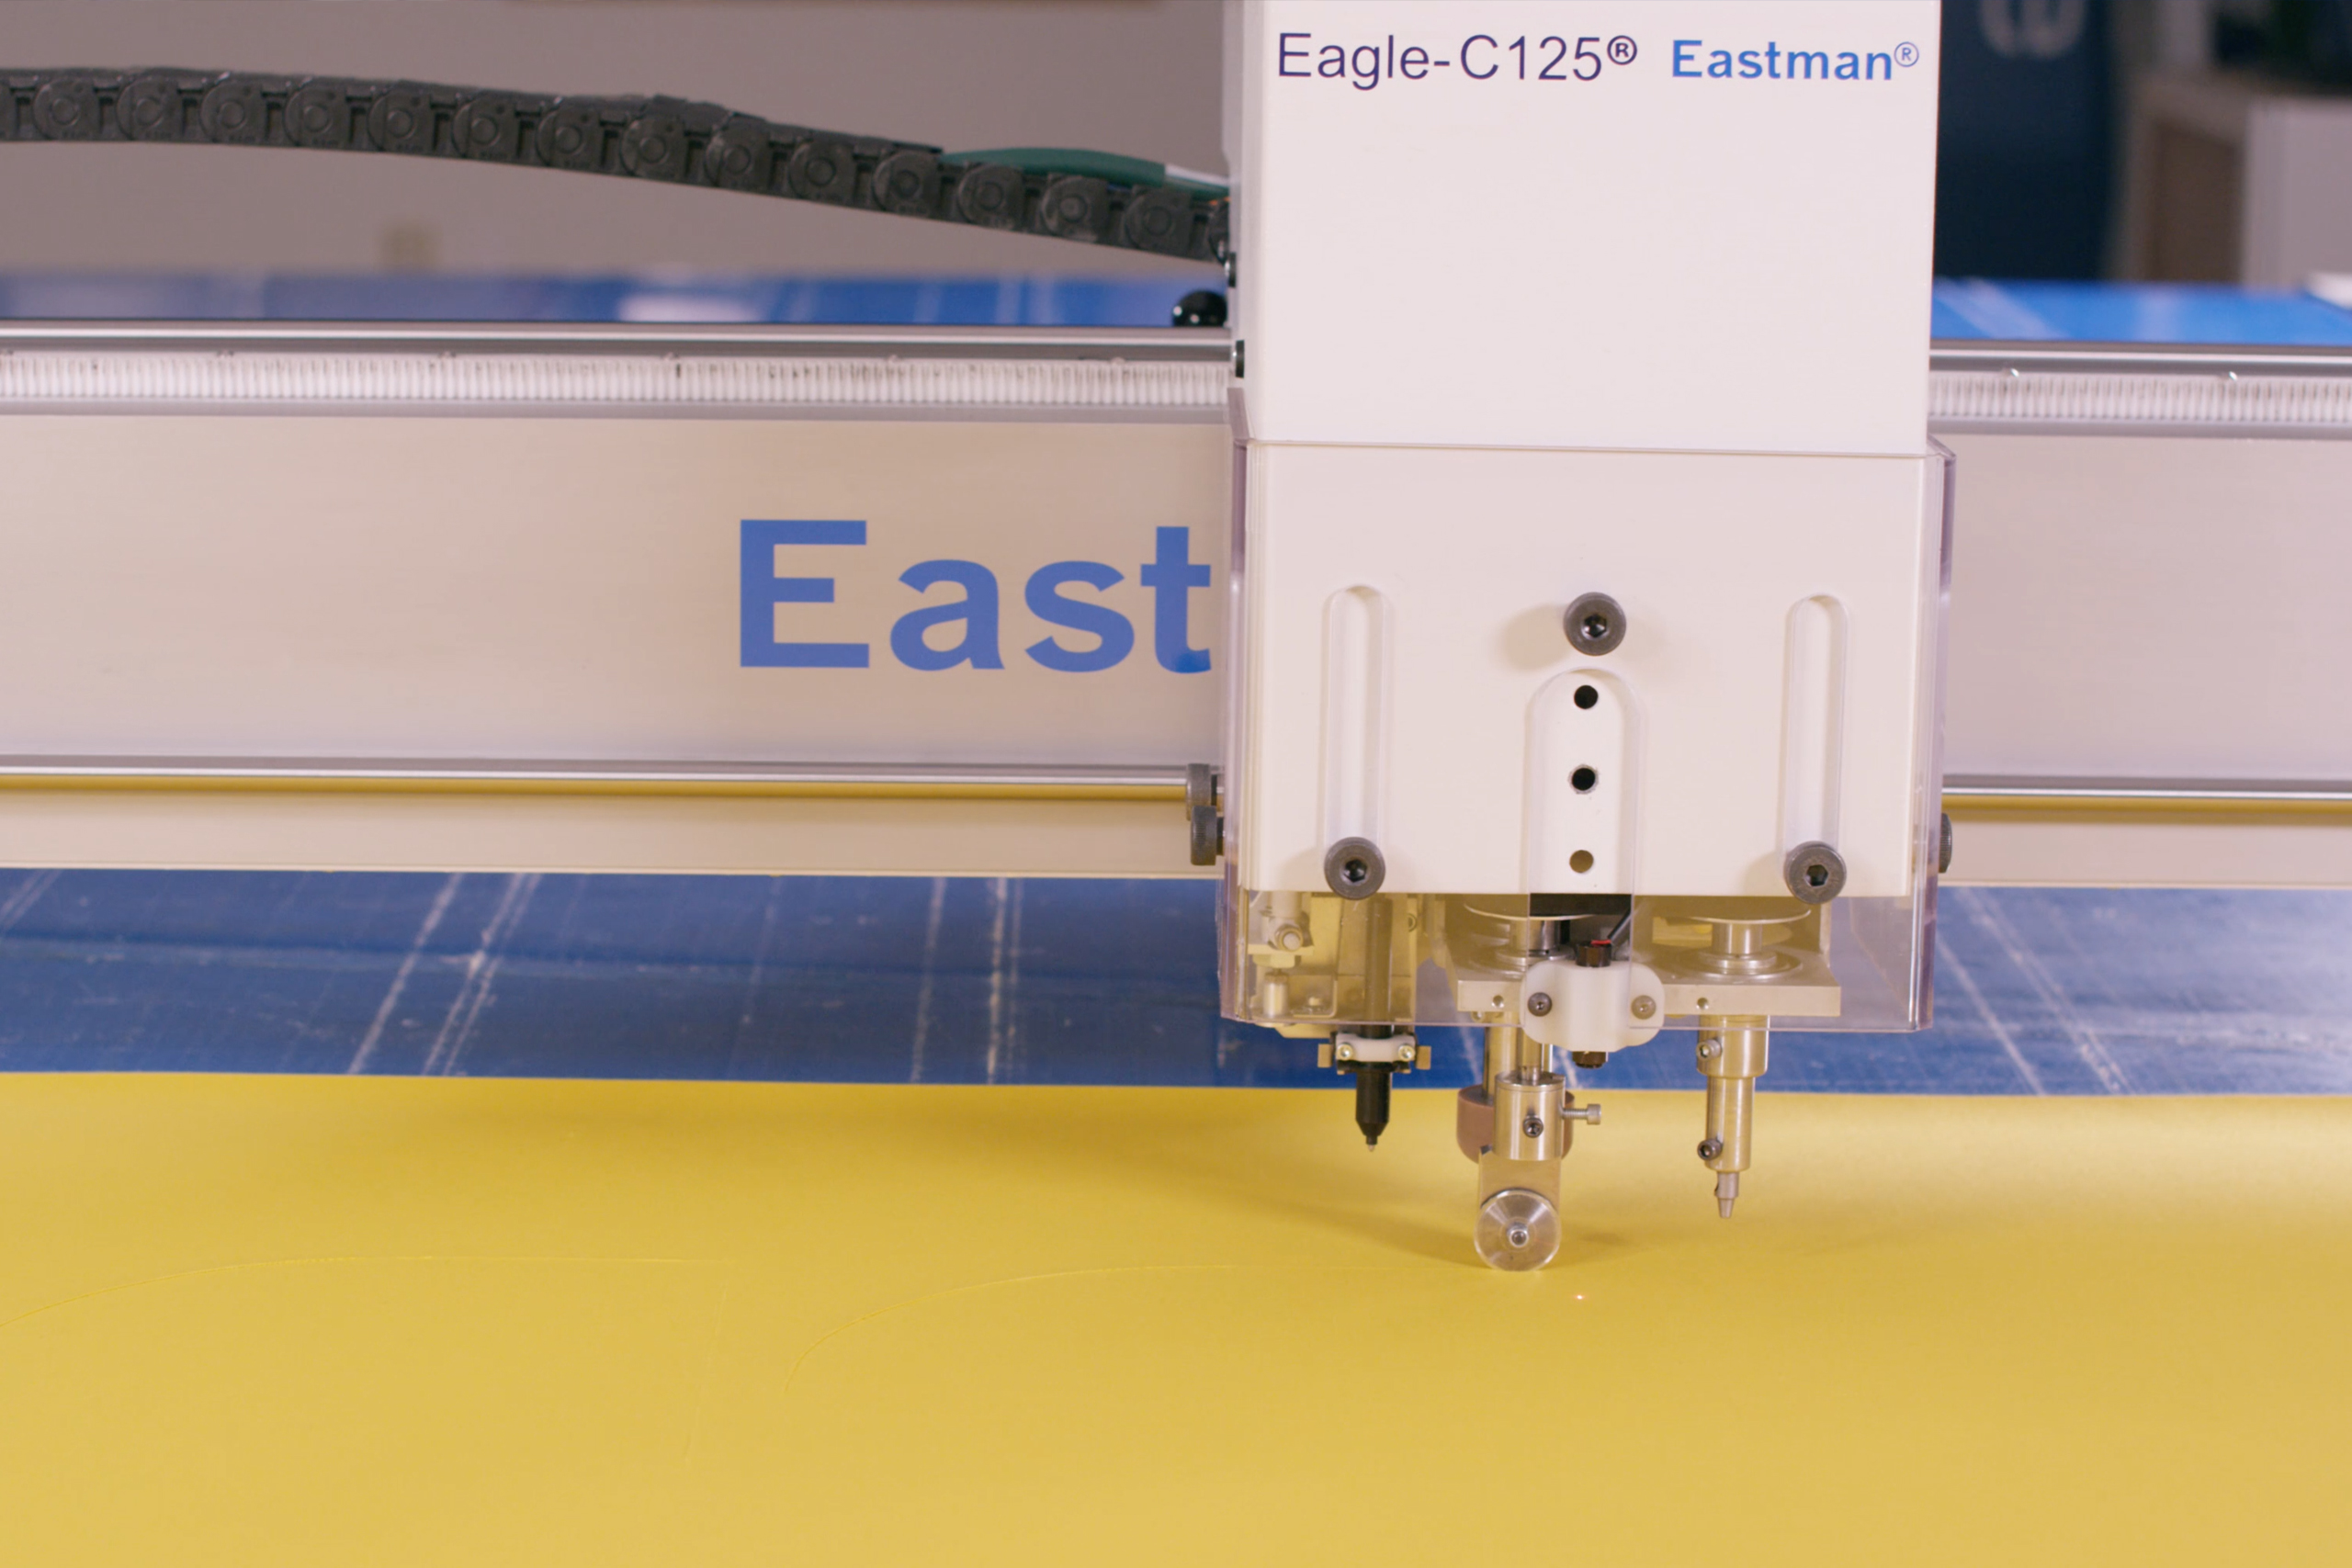 New Eagle-C125 conveyors available for small spaces